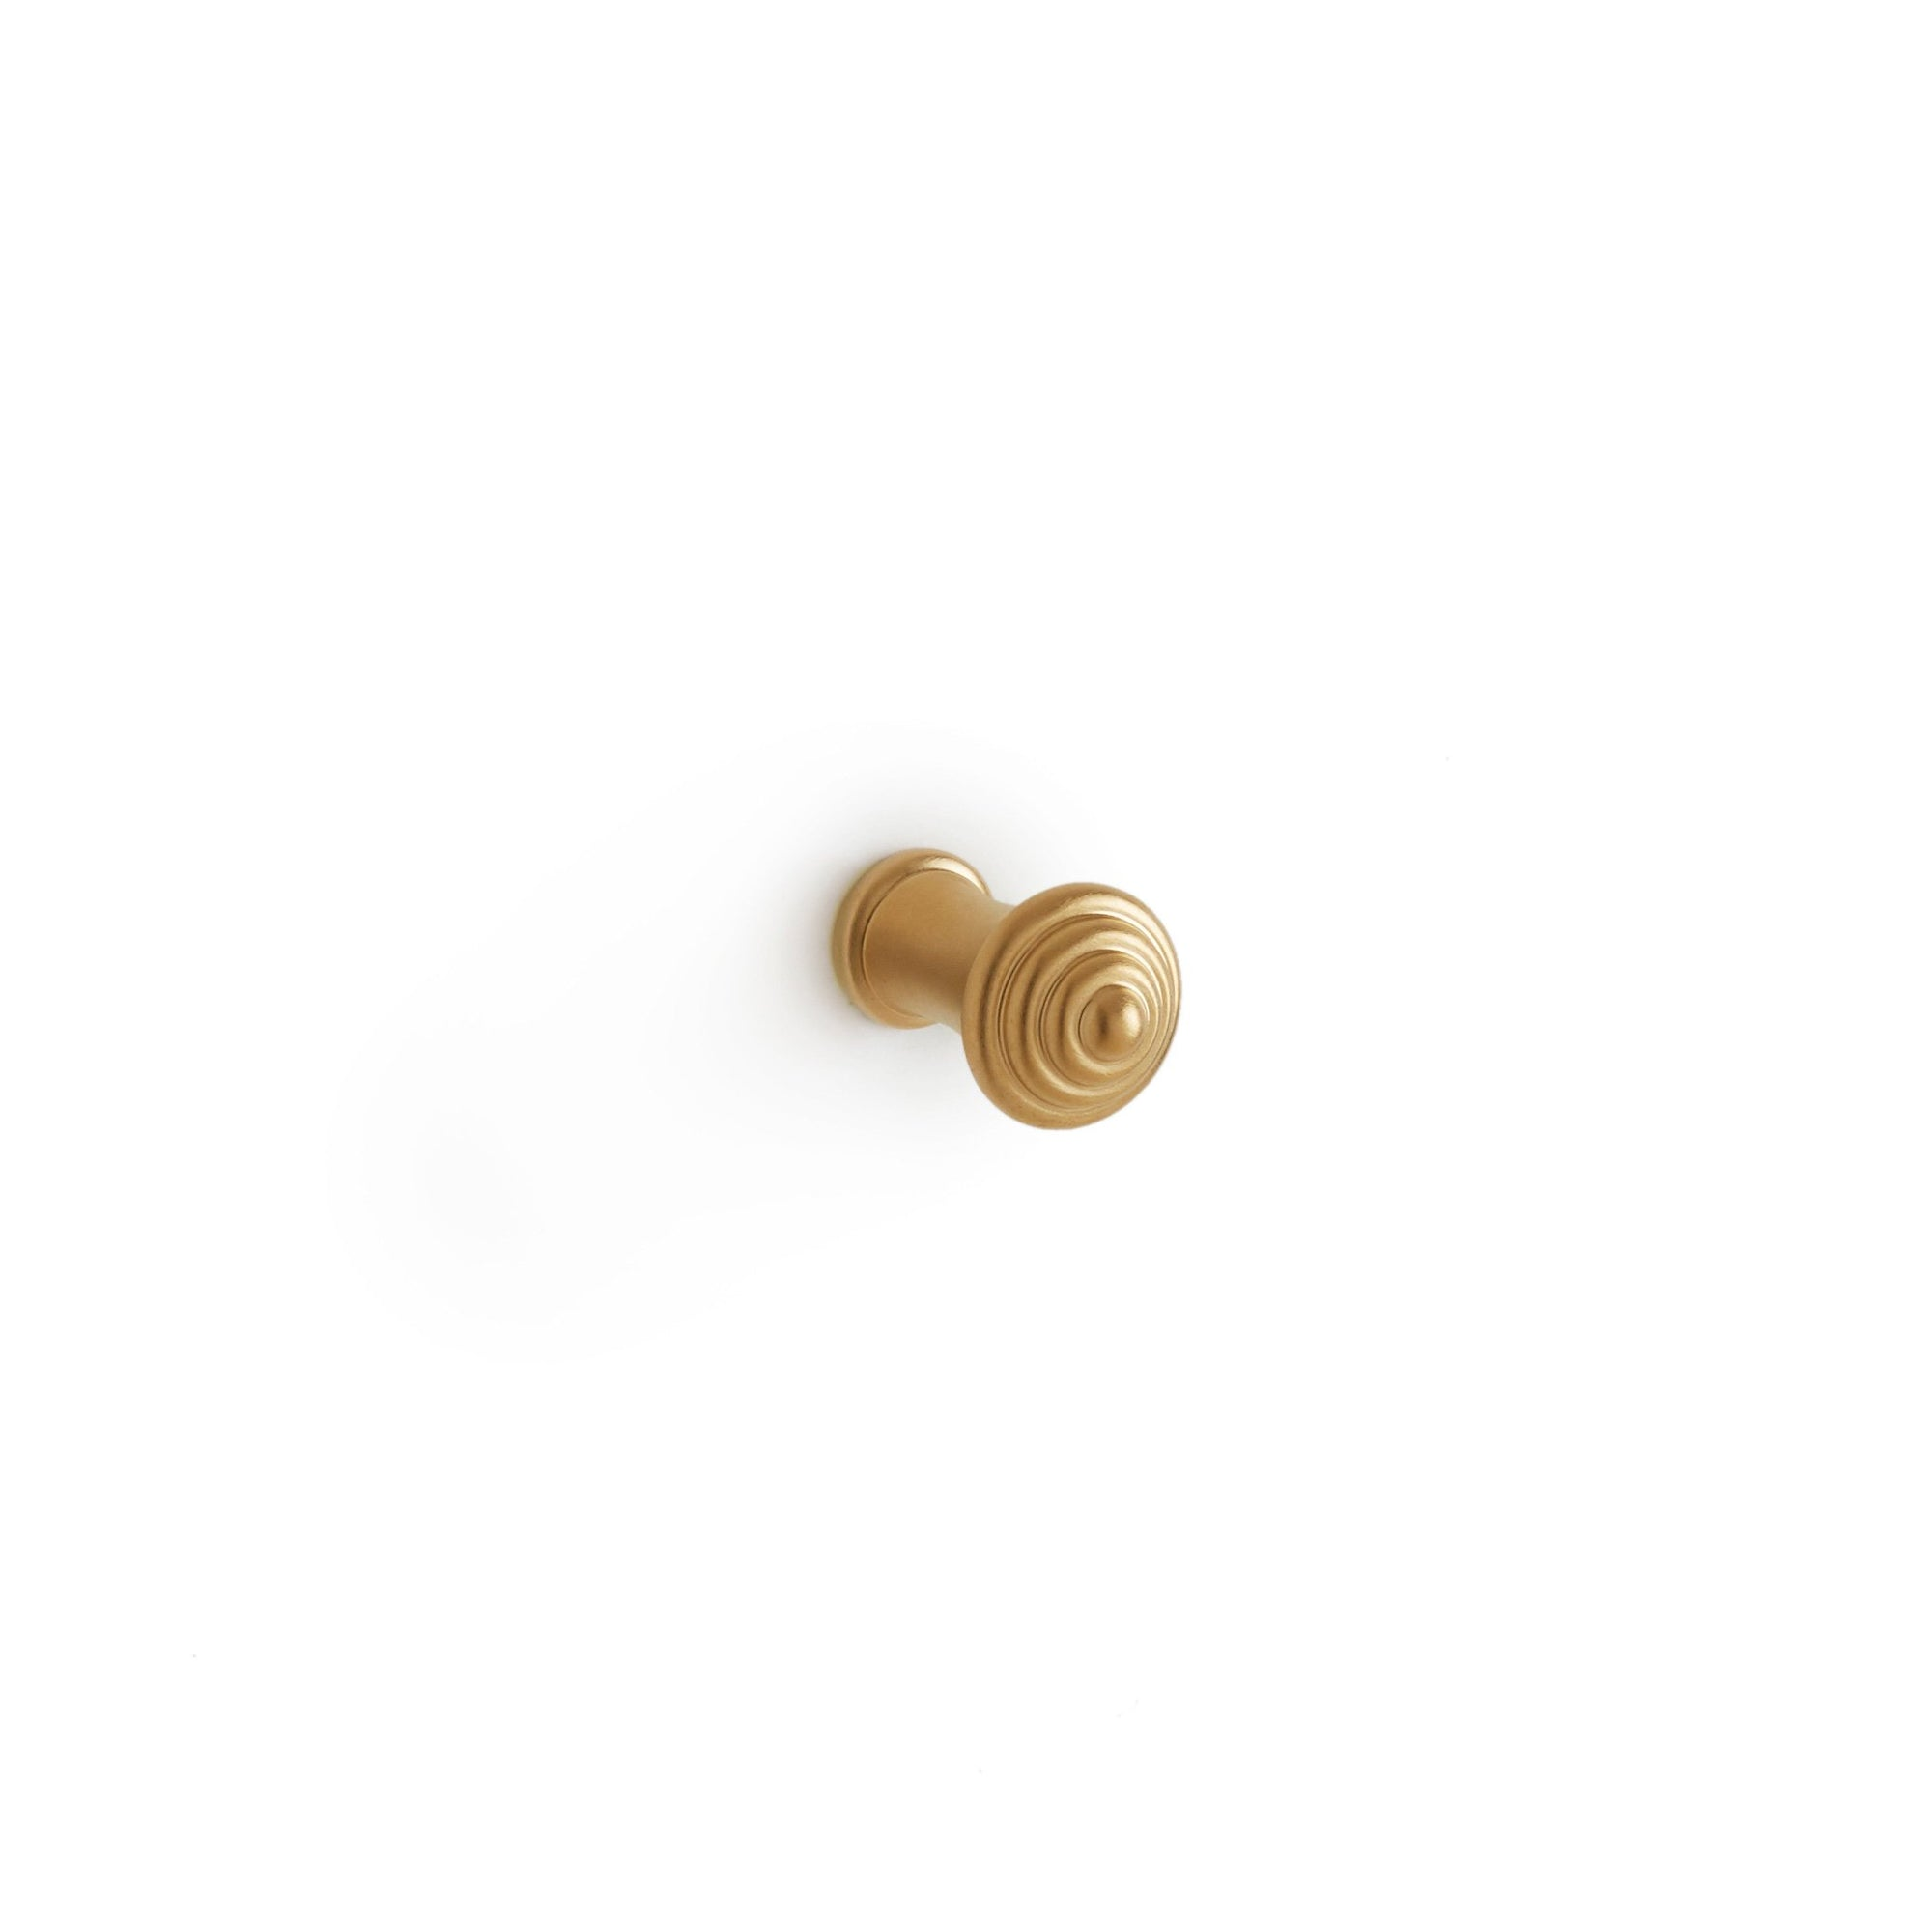 0007-3/4-GP Sherle Wagner International Grey Series III Cabinet & Drawer Knob in Gold Plate metal finish